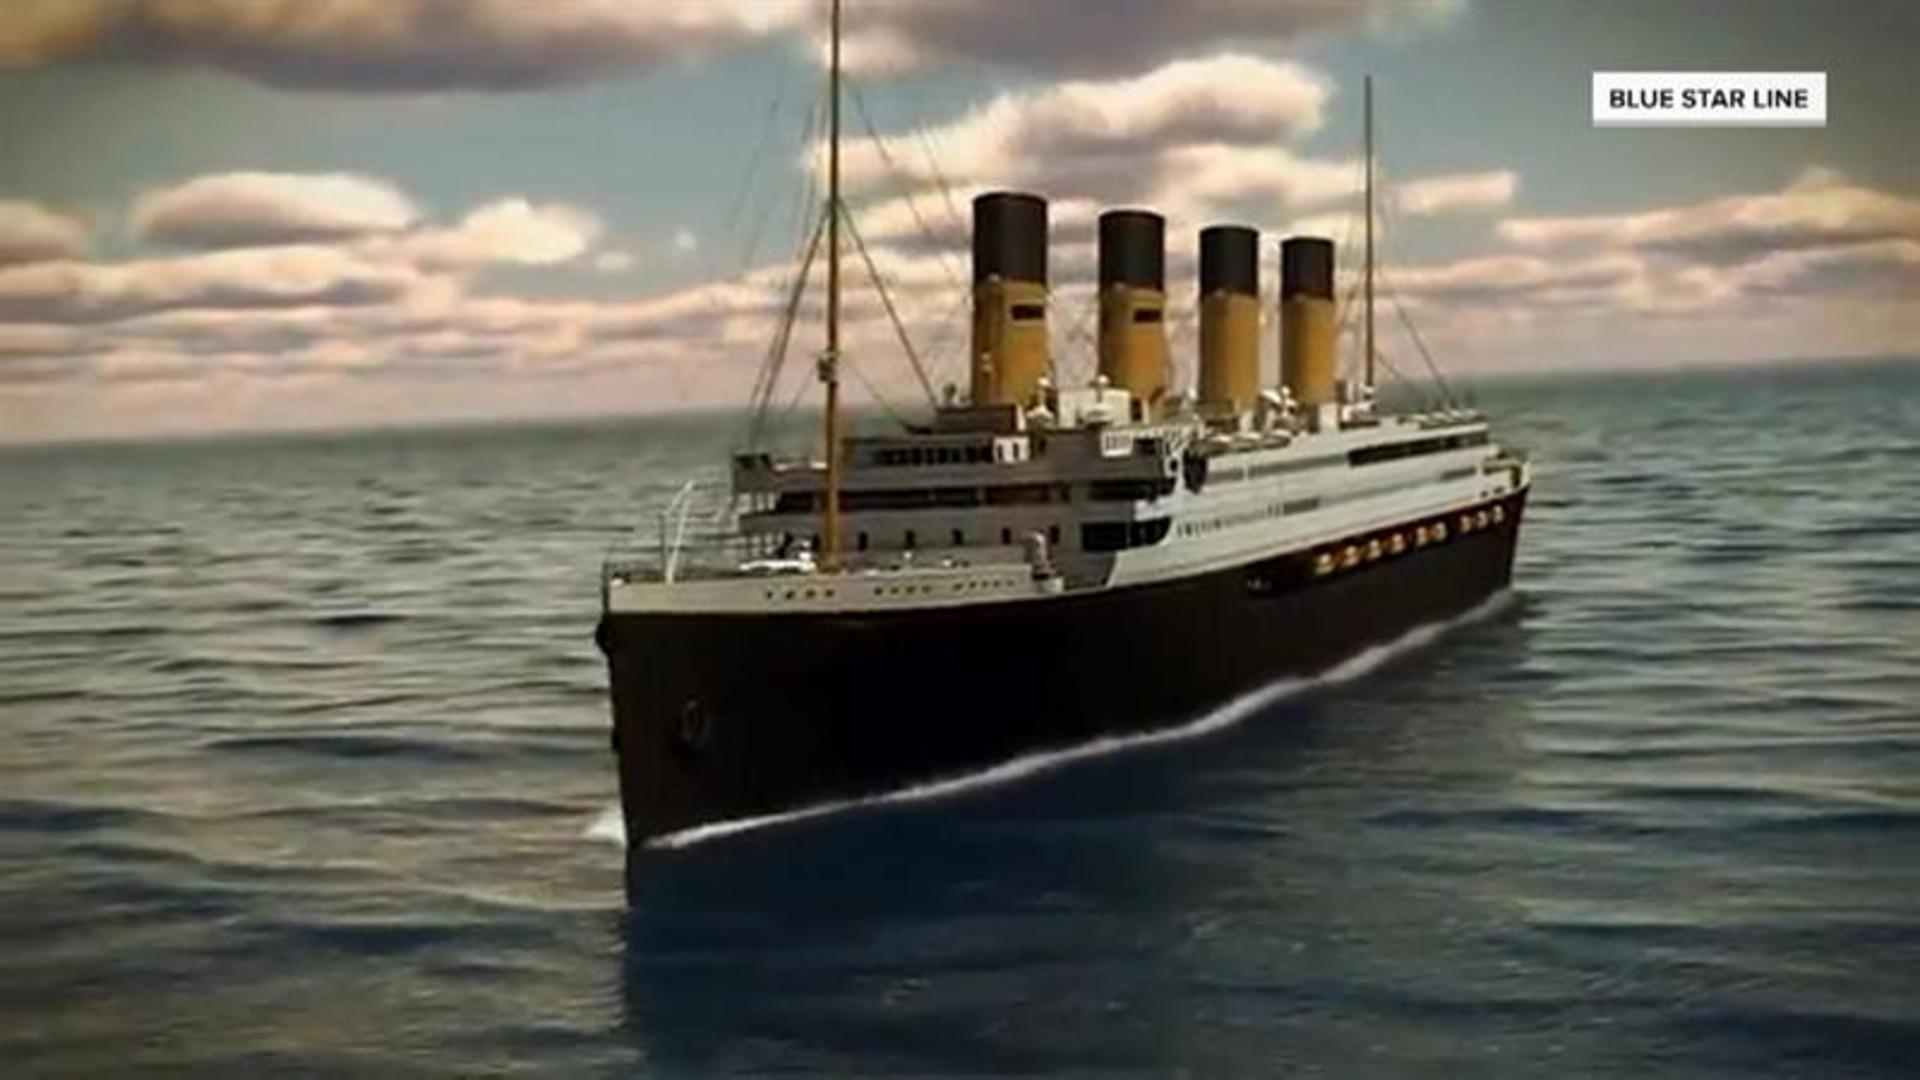 National News - Titanic II To Set Sail, Retrace Infamous Route of Original Ship